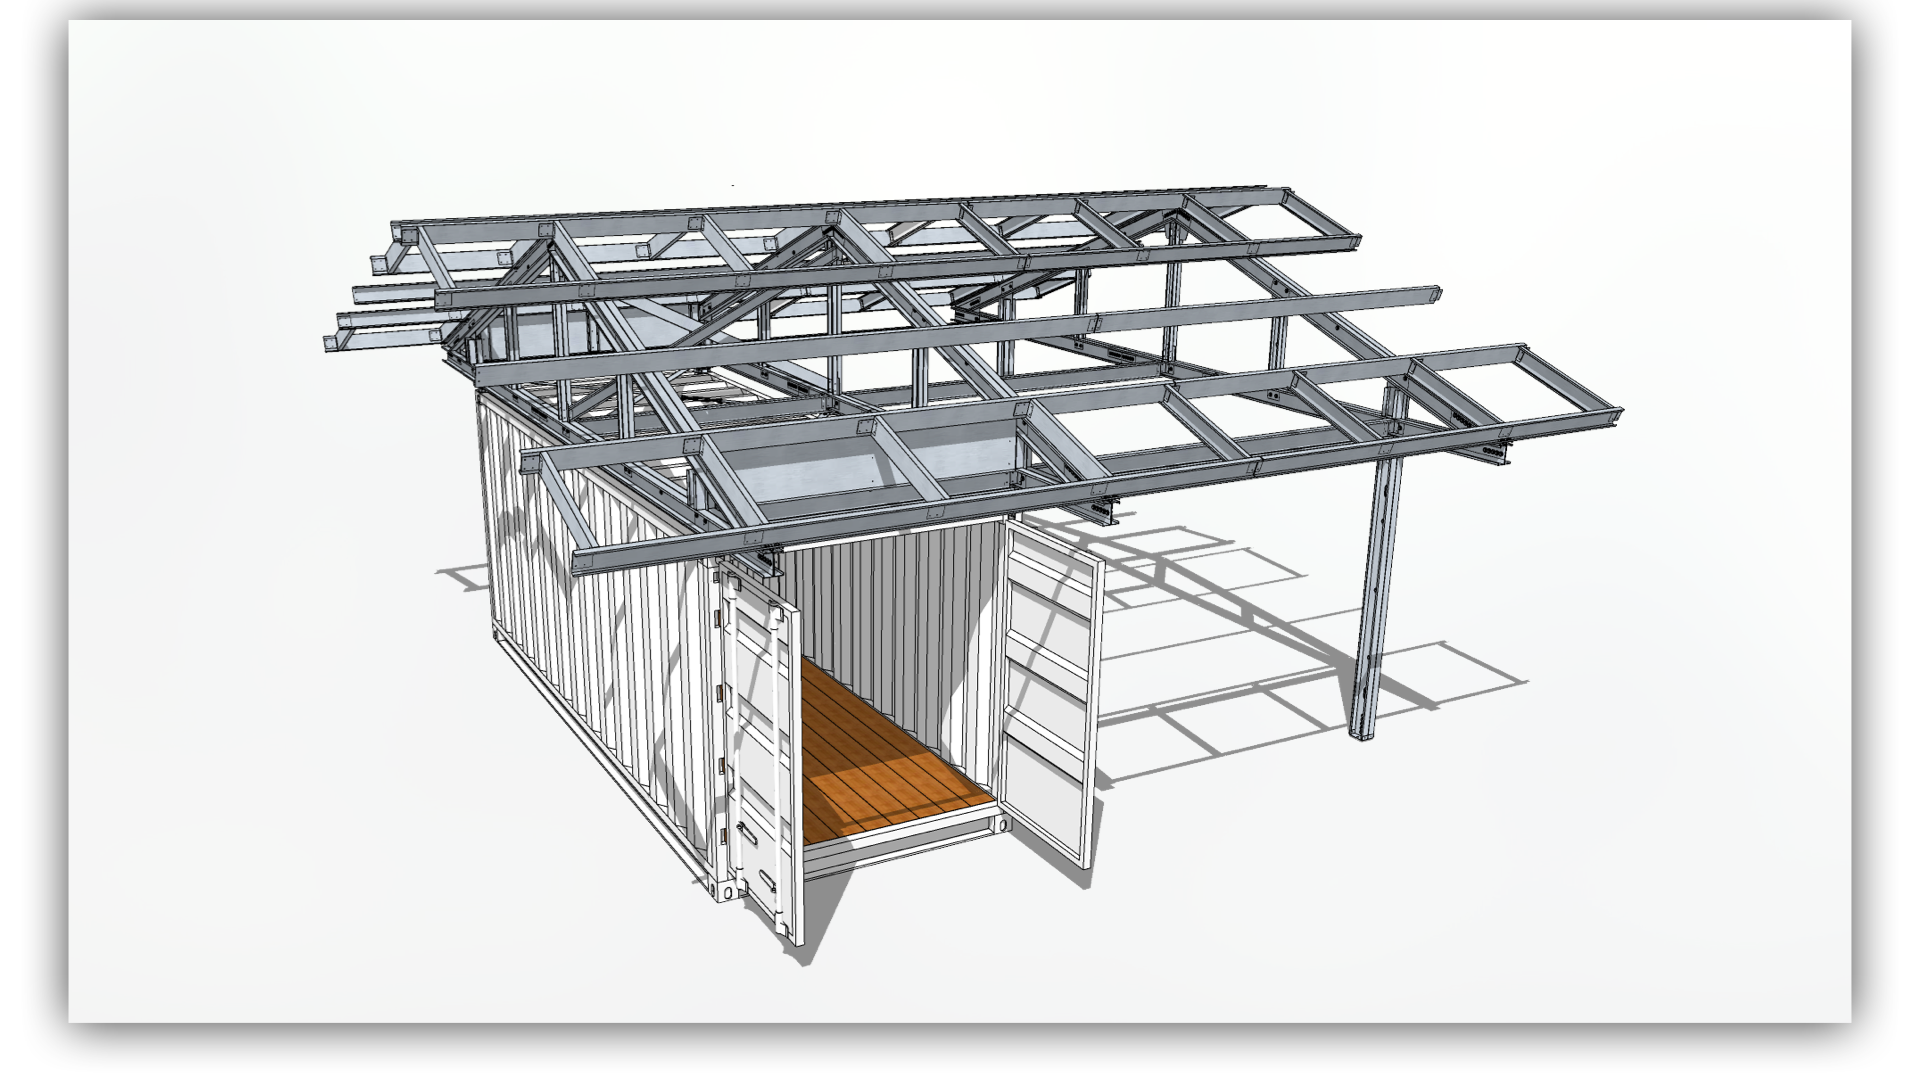 Assembly - After delivery, the frame is quickly assembled and attached to the shipping container to provide a stable platform for a variety of humanitarian development needs. The frame has a 100 year life-cycle and can be disassembled, relocated, and repurposed for multiple projects in multiple locations.